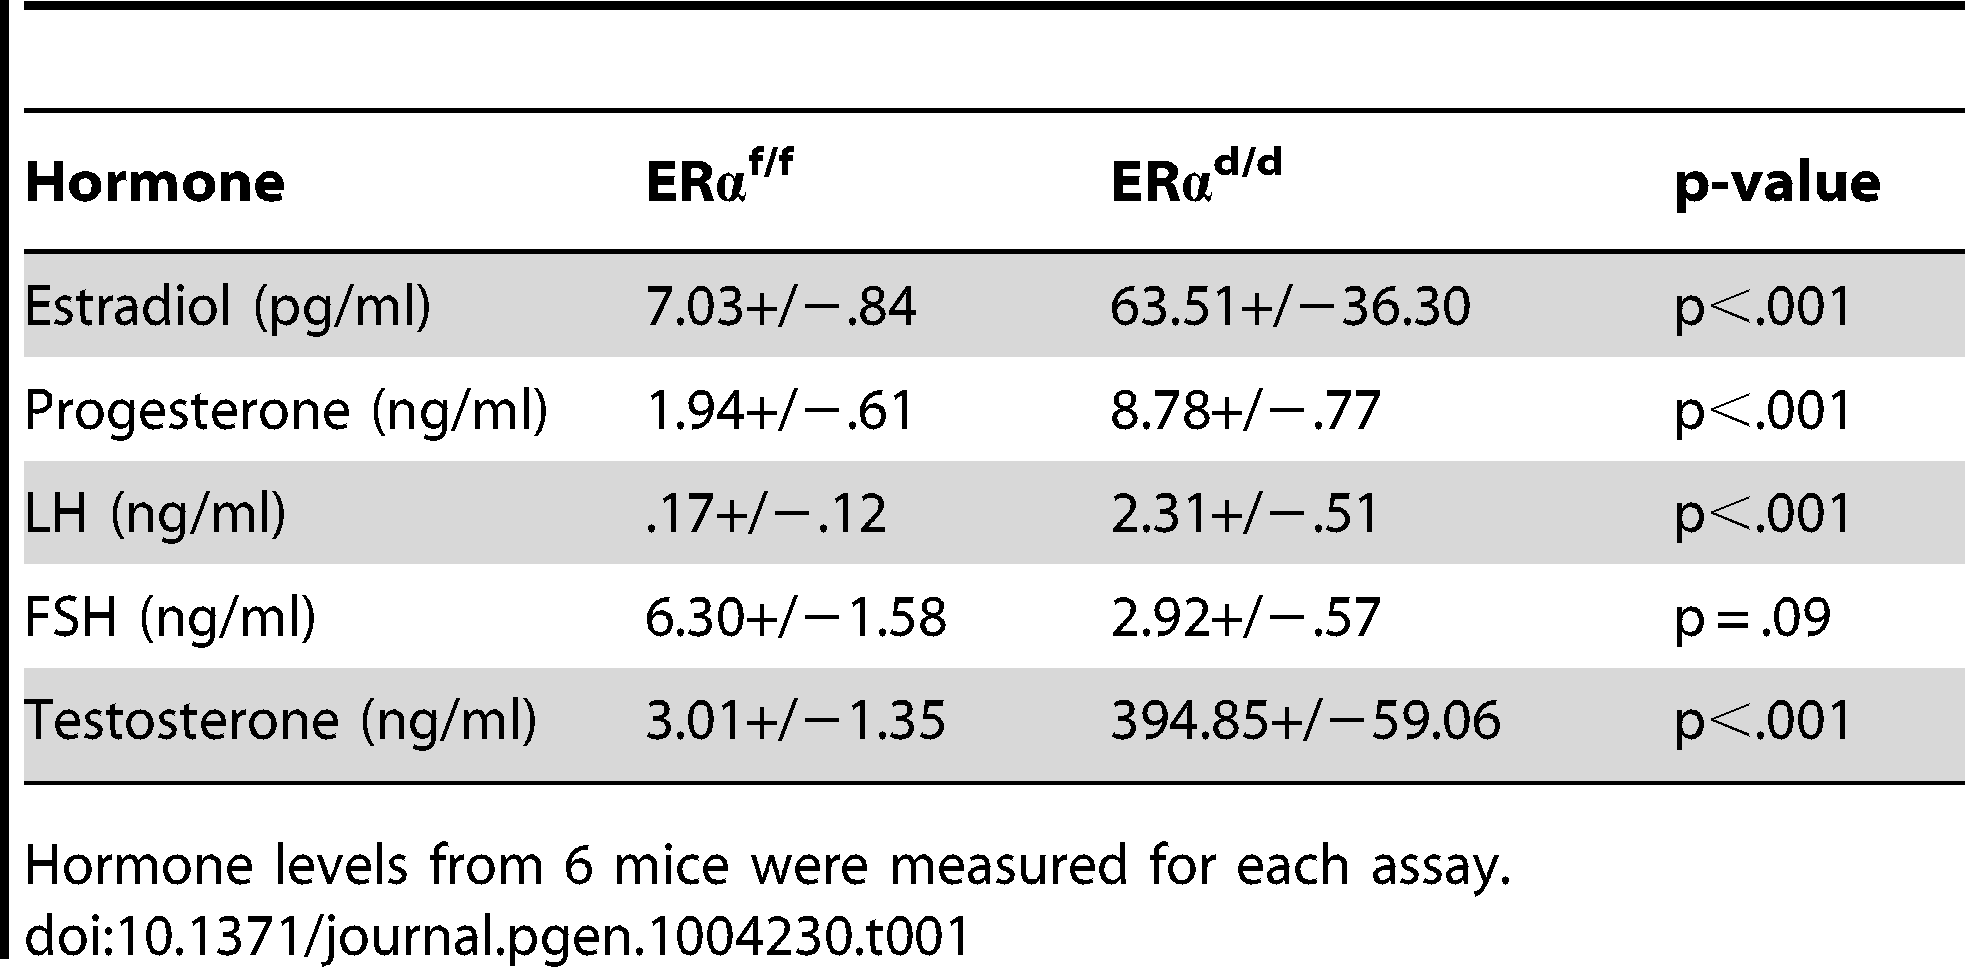 Serum hormone measurements of ERα<sup>f/f</sup> and ERα<sup>d/d</sup> mice at six months of age.